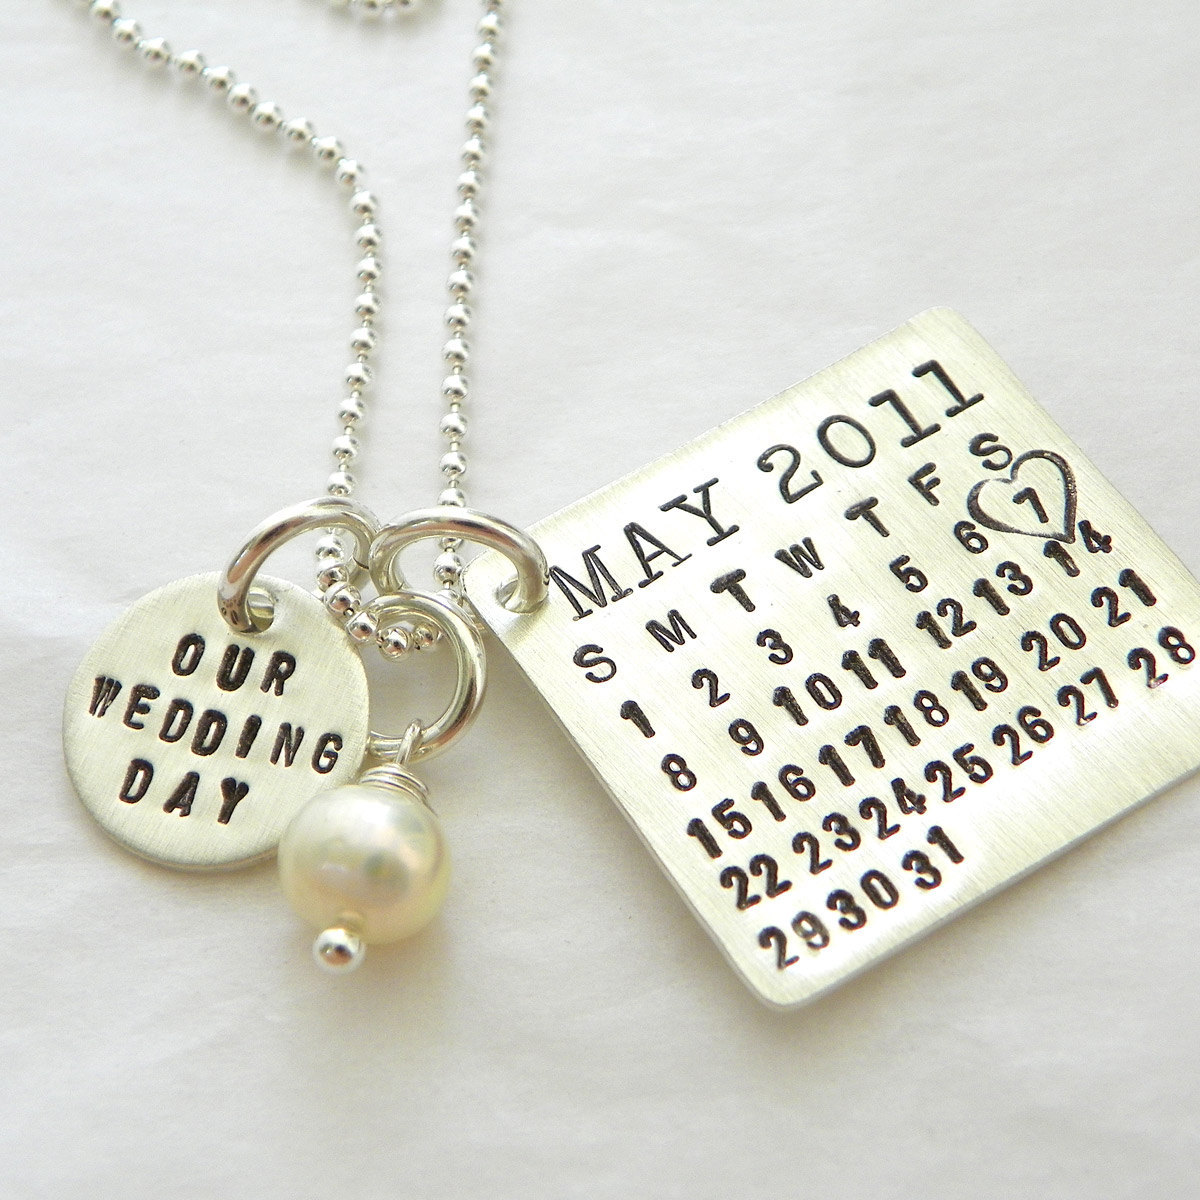 Our Wedding Day Mark Your Calendar Necklace (tm) - personalized sterling silver necklace with pearl